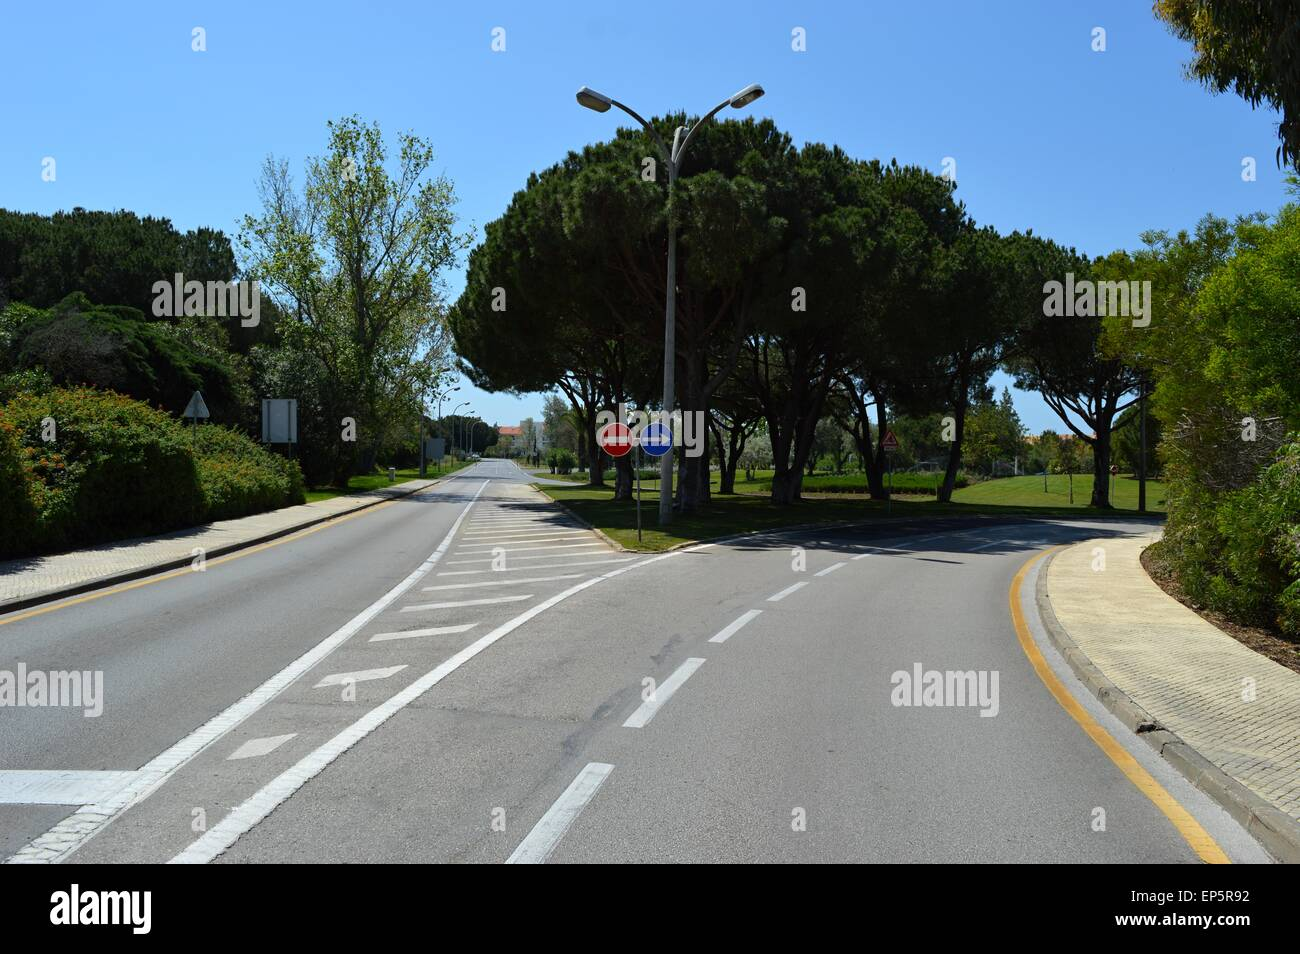 Road Junction with Trees - Stock Image